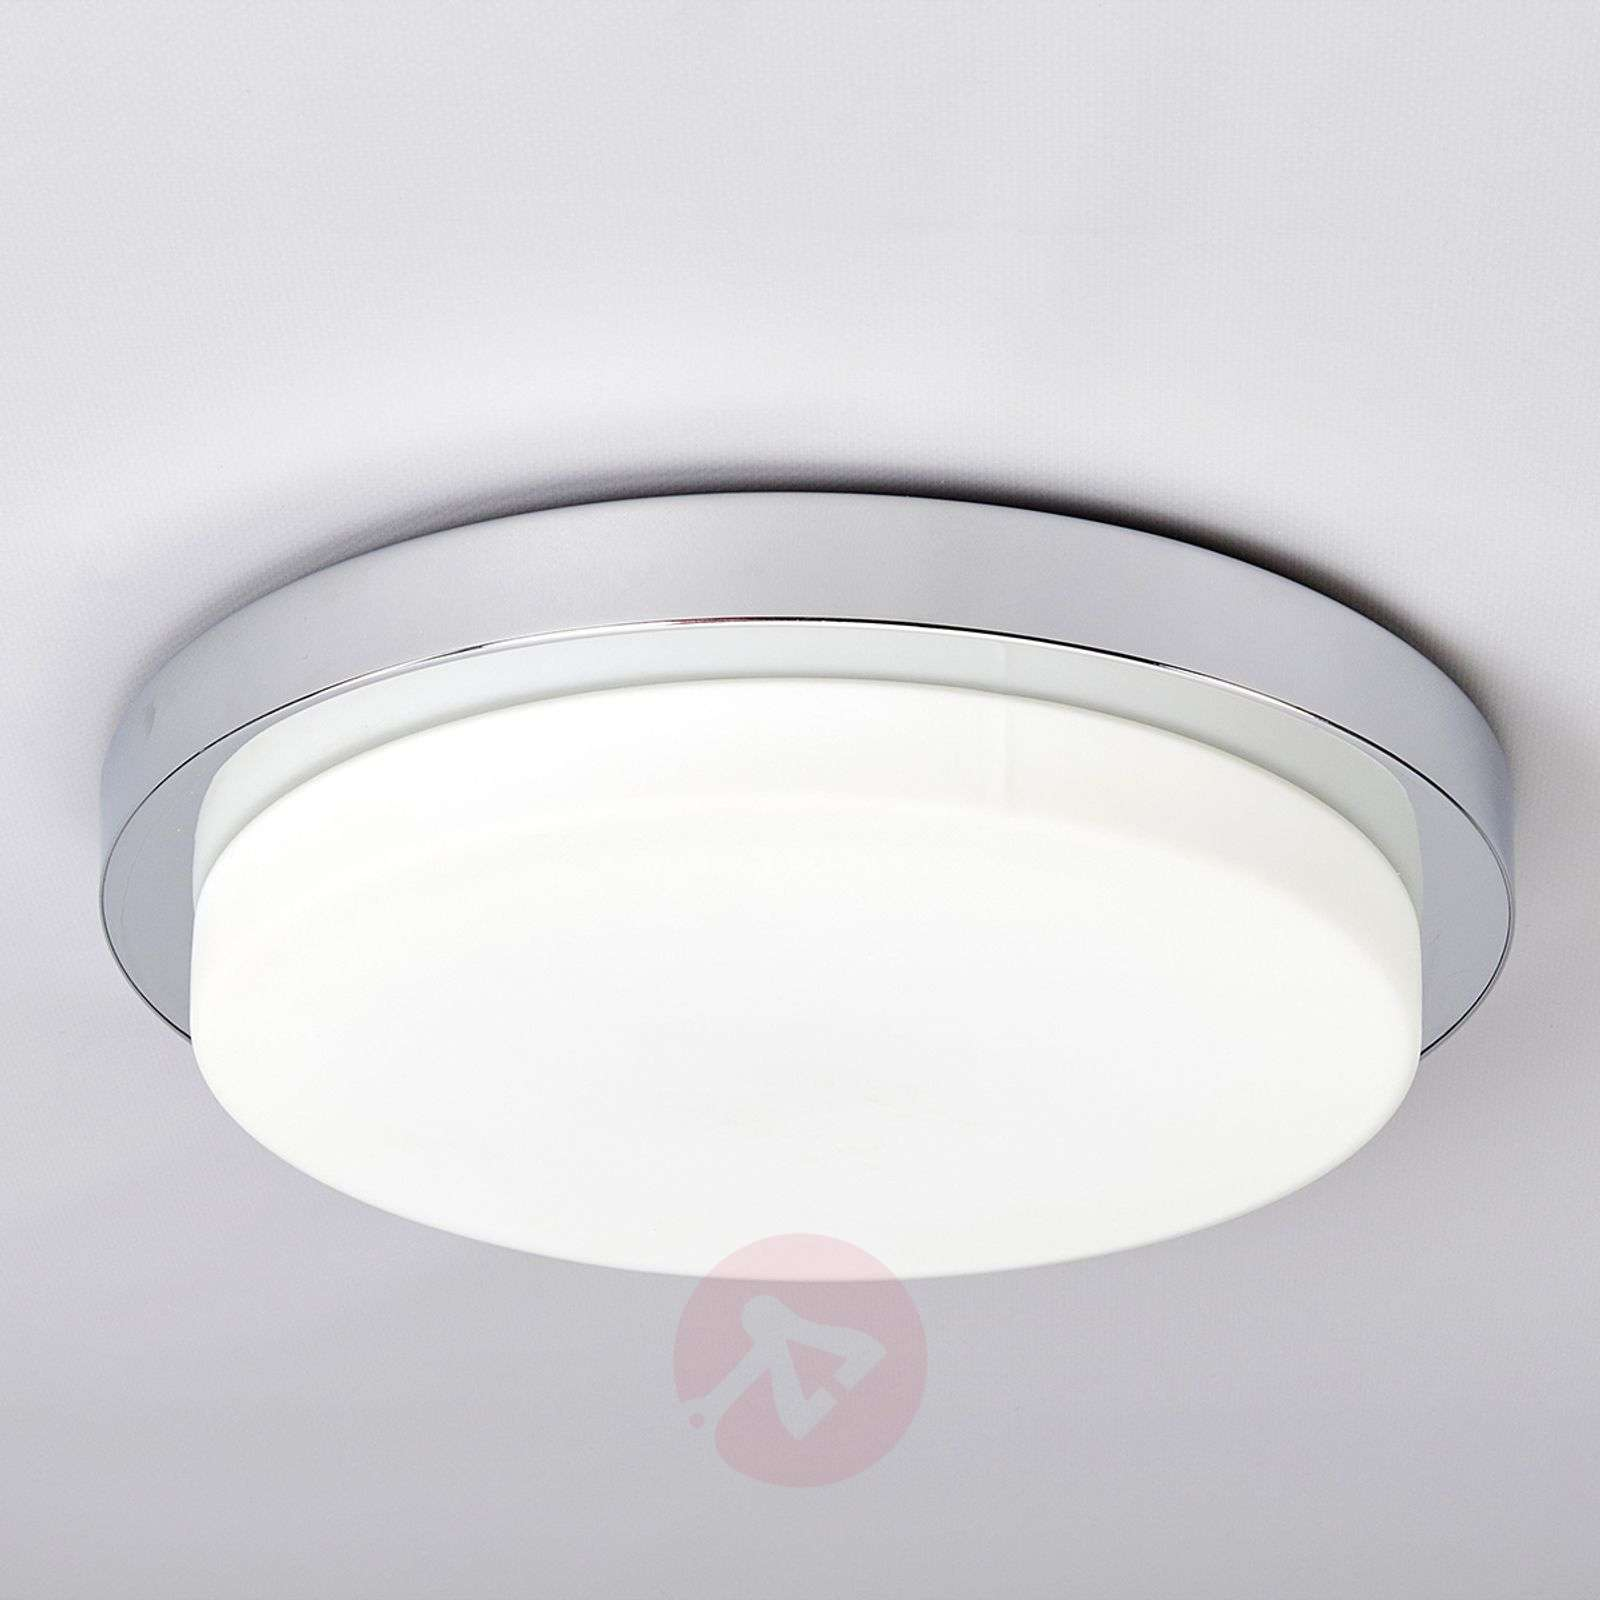 adriano led bathroom ceiling light